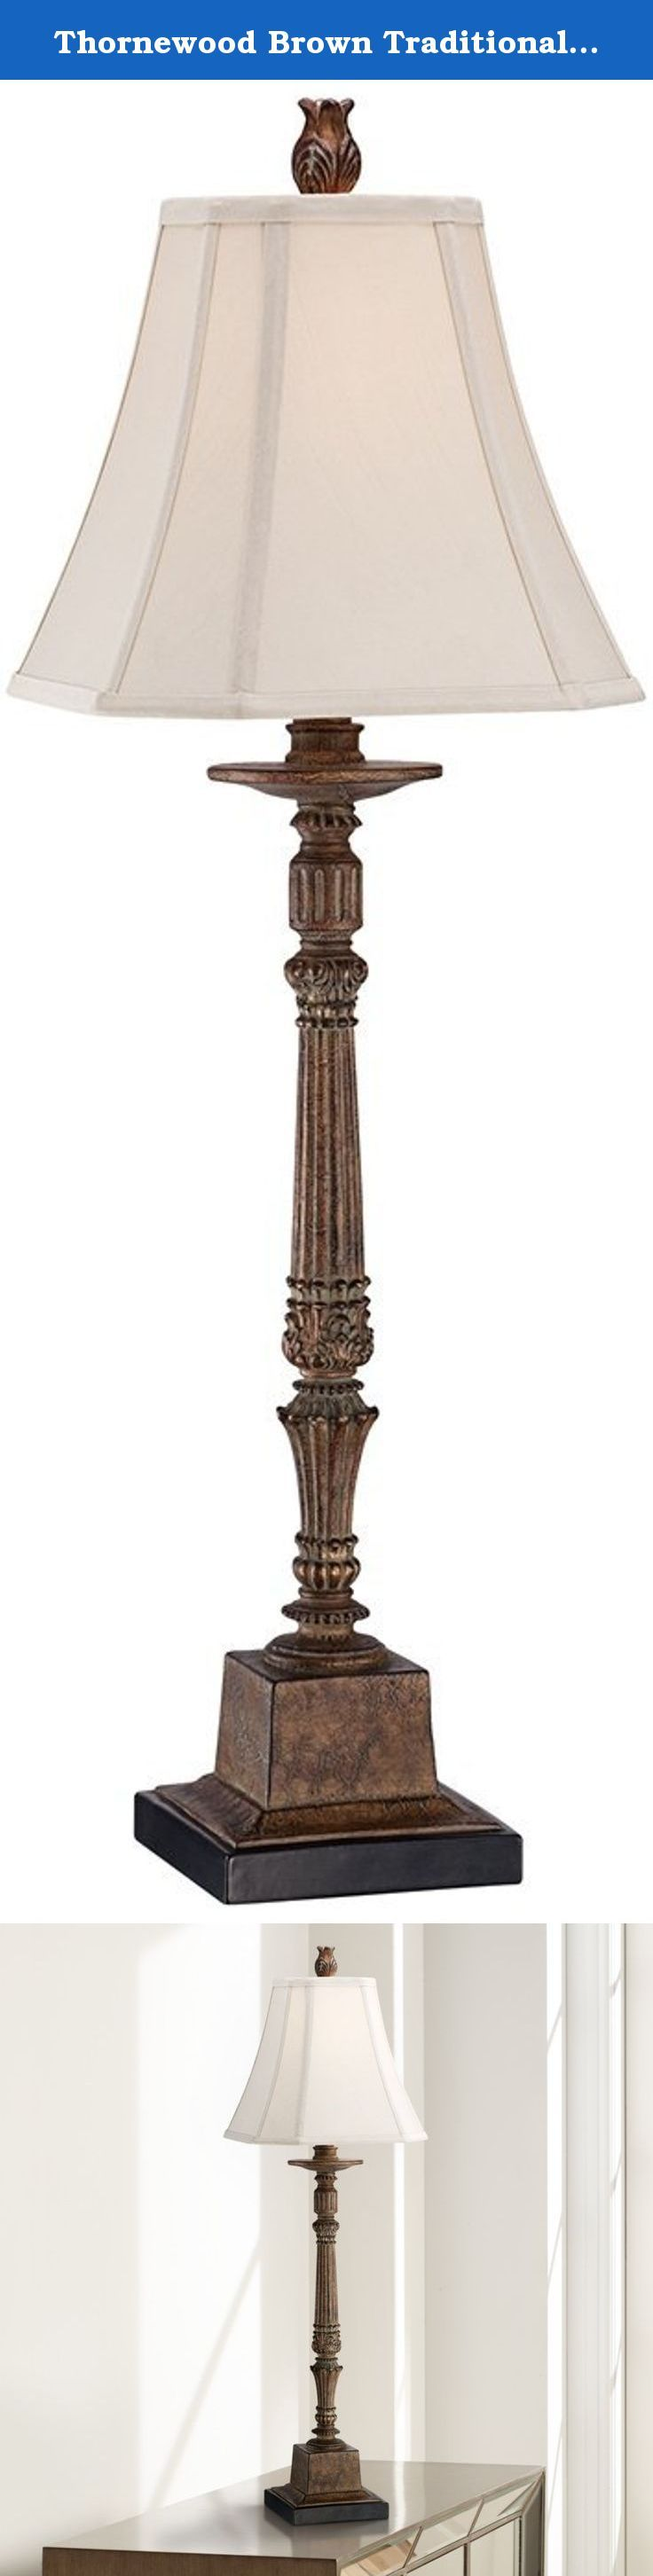 Thornewood Brown Traditional Console Table Lamp. This intricate console table lamp makes a great addition to any traditional living space. The slender candlestick base, which is propped up by a hearty square pedestal, features ornate scalloped and scroll detailing in a lovely crackled brown finish for an aged look. A square bell shade adds playful curves to the design, and a stately, textured finial tops the look. From the Regency Hill collection of table lamps. - Resin construction. -...